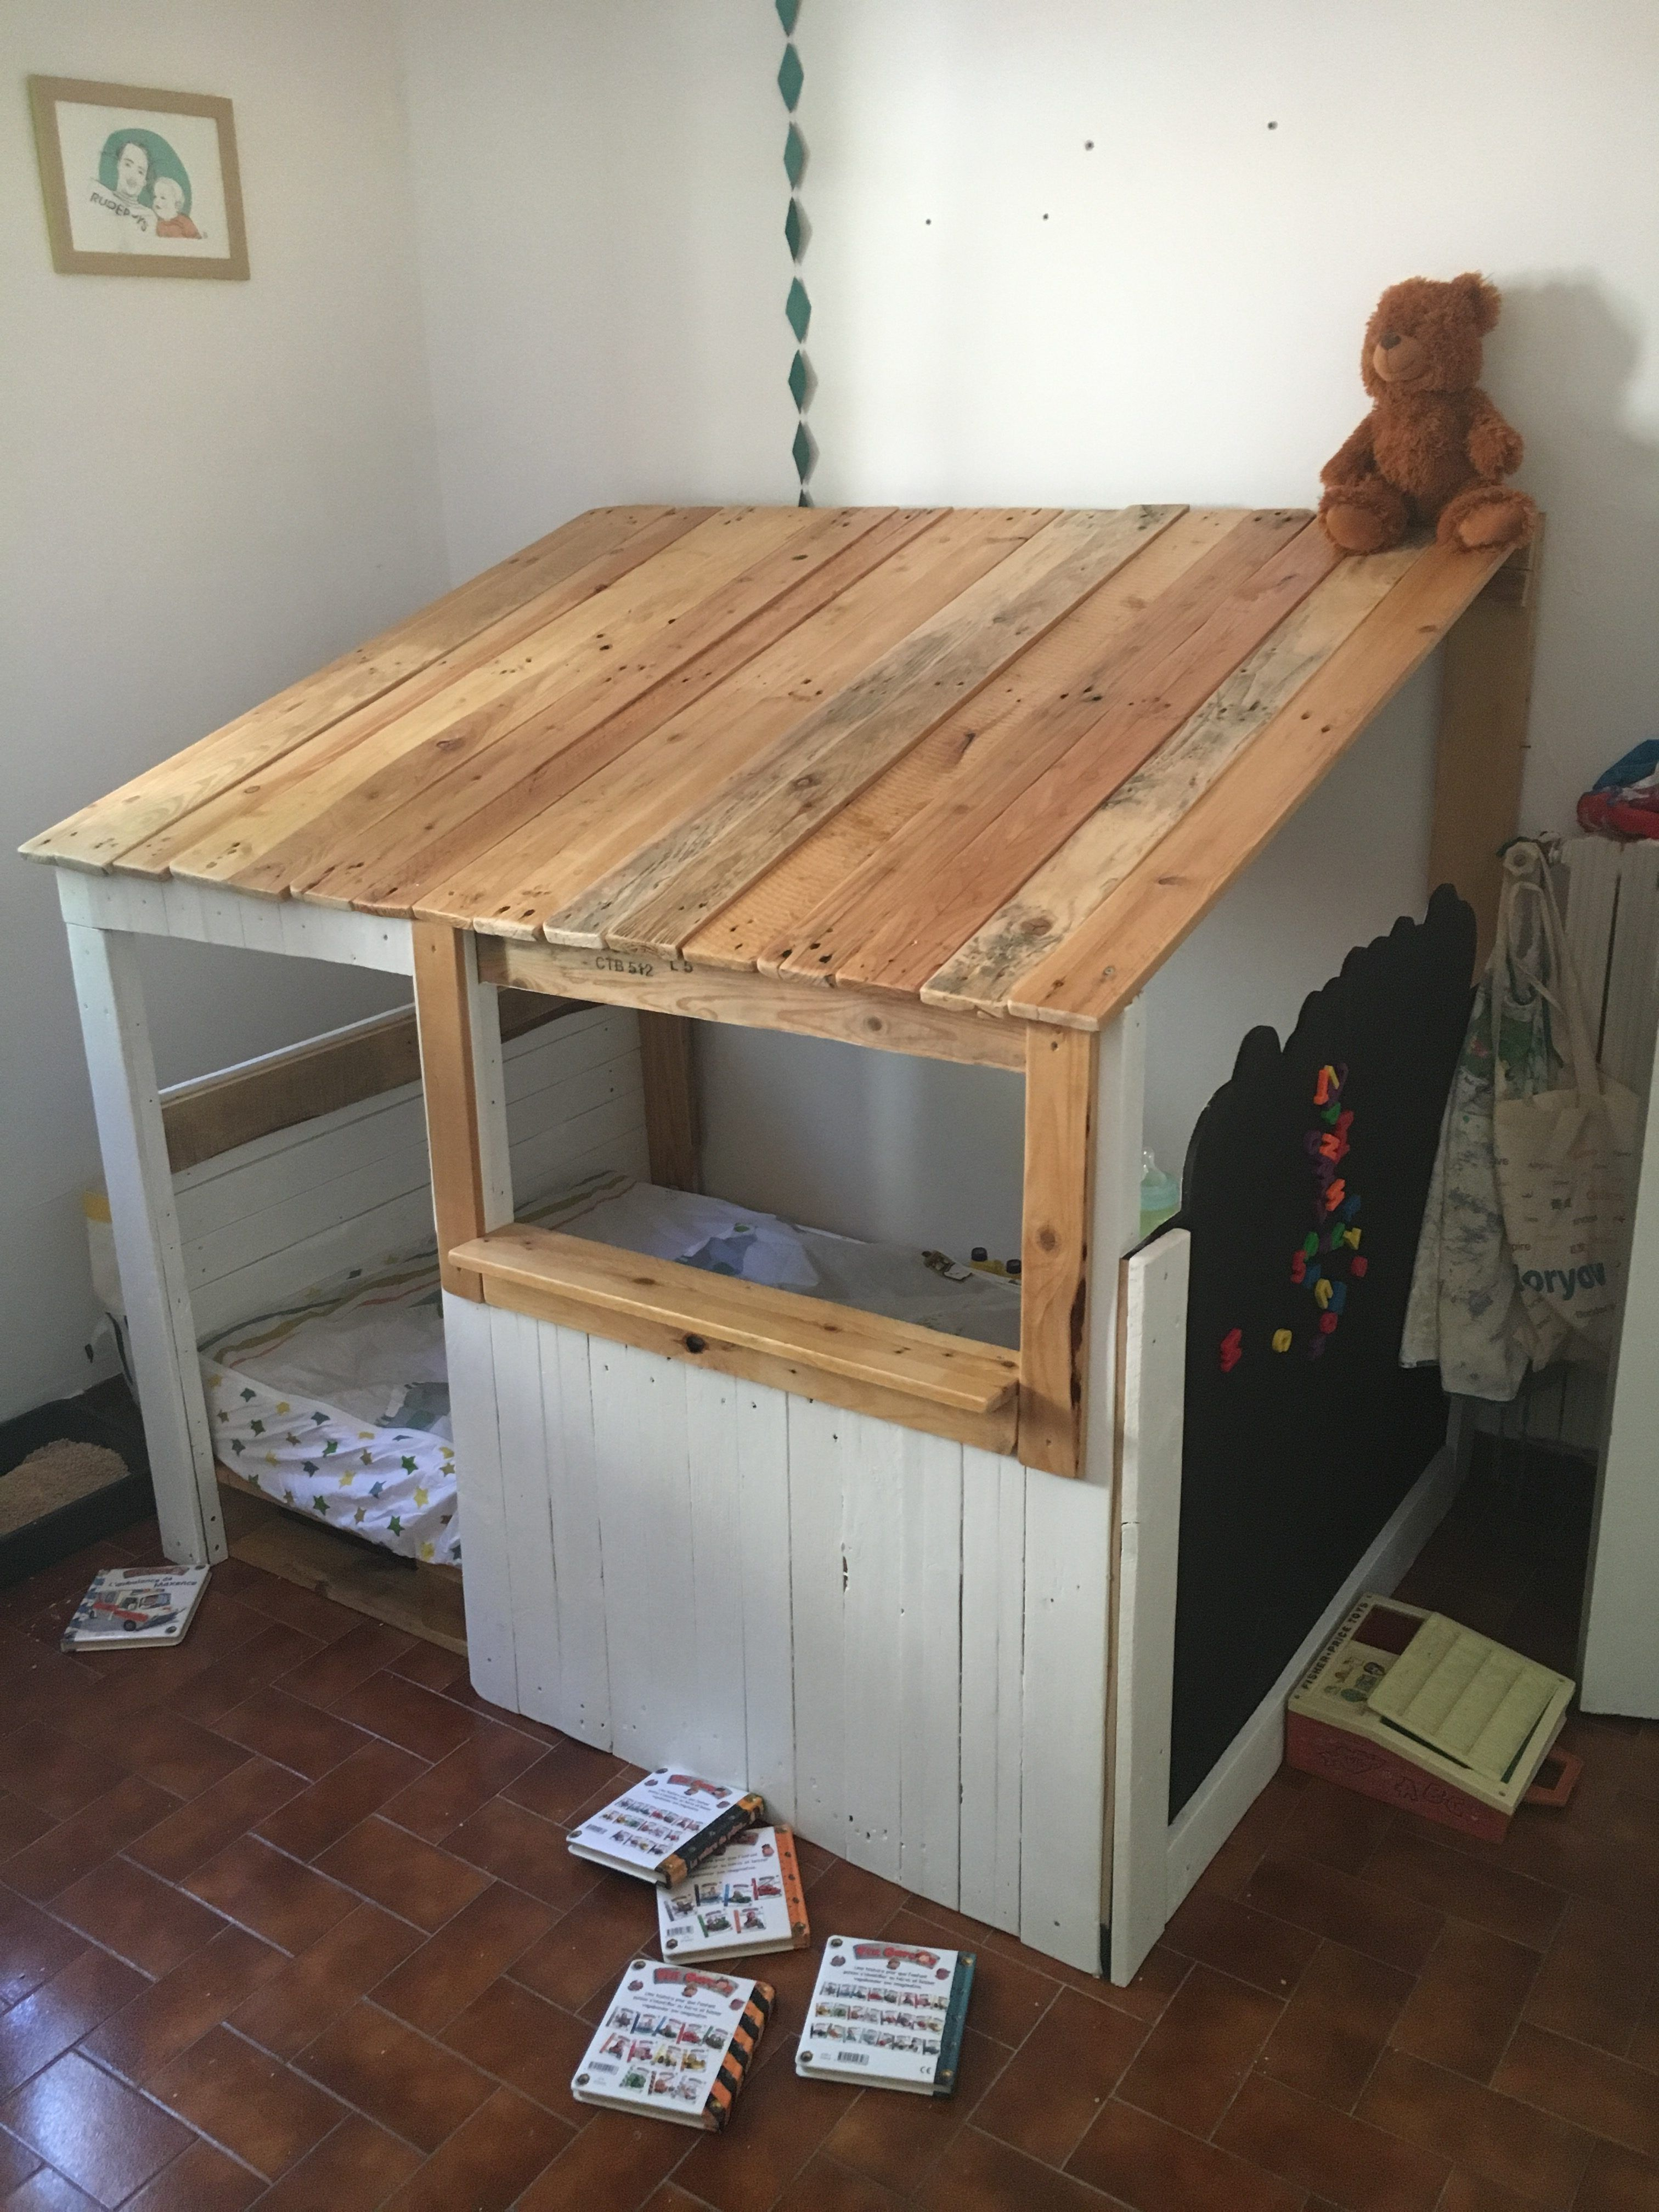 #Bedroom, #PalletKidsPlayhouse, #RecyclingWoodPallets Here's our project we made for our 3-year-old son: a Child's Pallet Cabin Bed. Most of the build was fairly easy, but the longest part was sanding and varnishing the wood.  How we built our Child's Pallet Cabin Bed: We didn't have a plan; we just